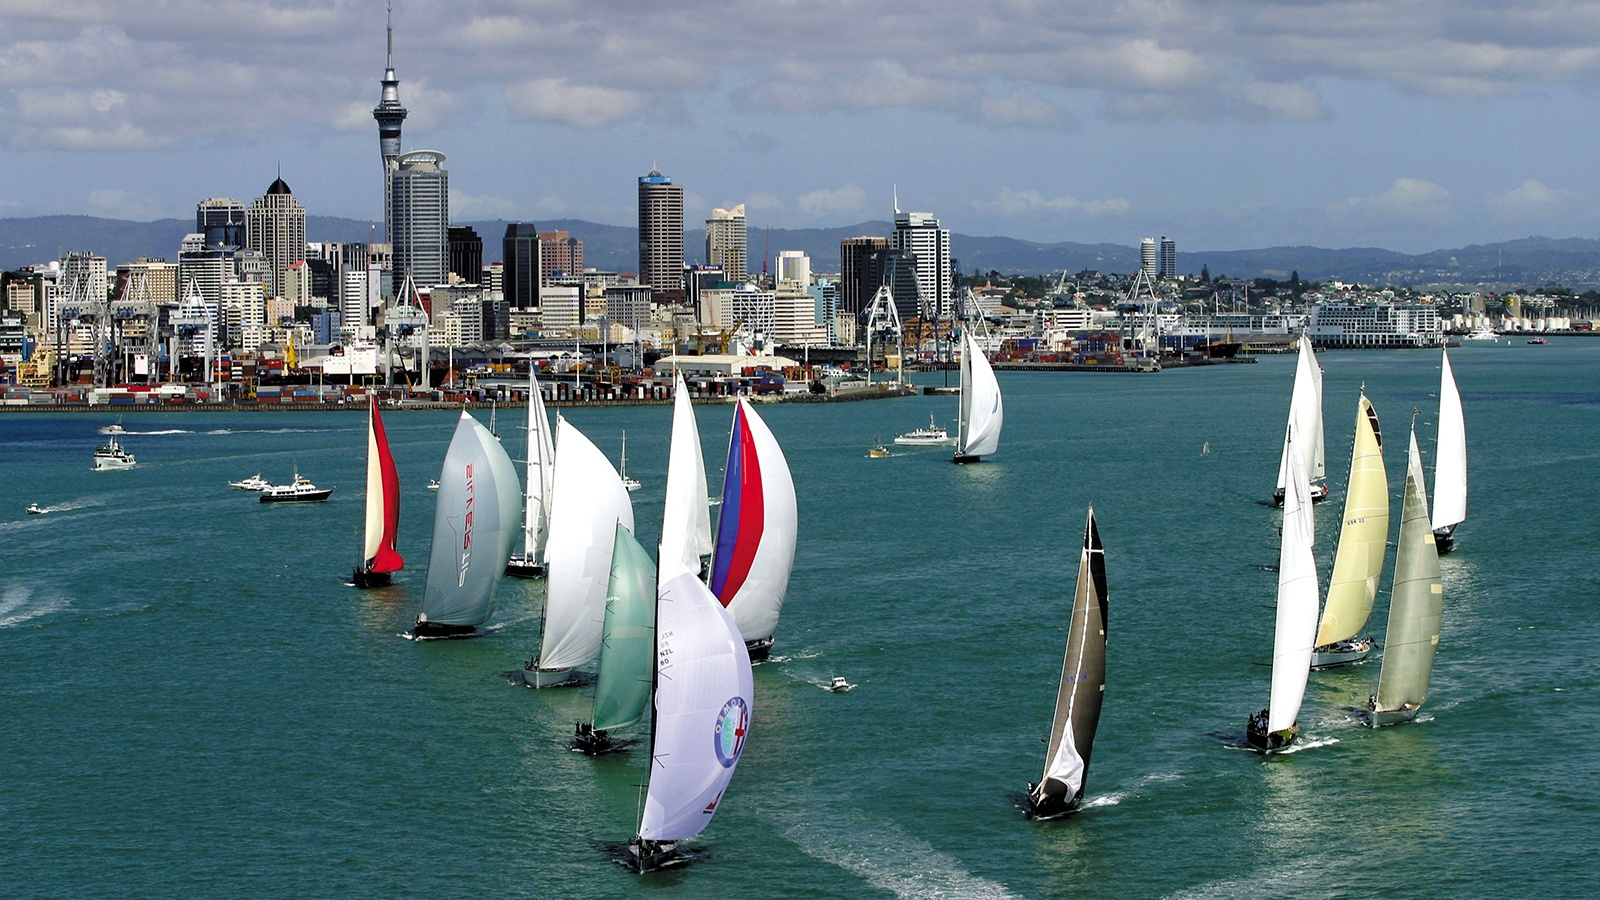 Competitors have this to look forward to in Auckland - pic courtesy RNZYS.